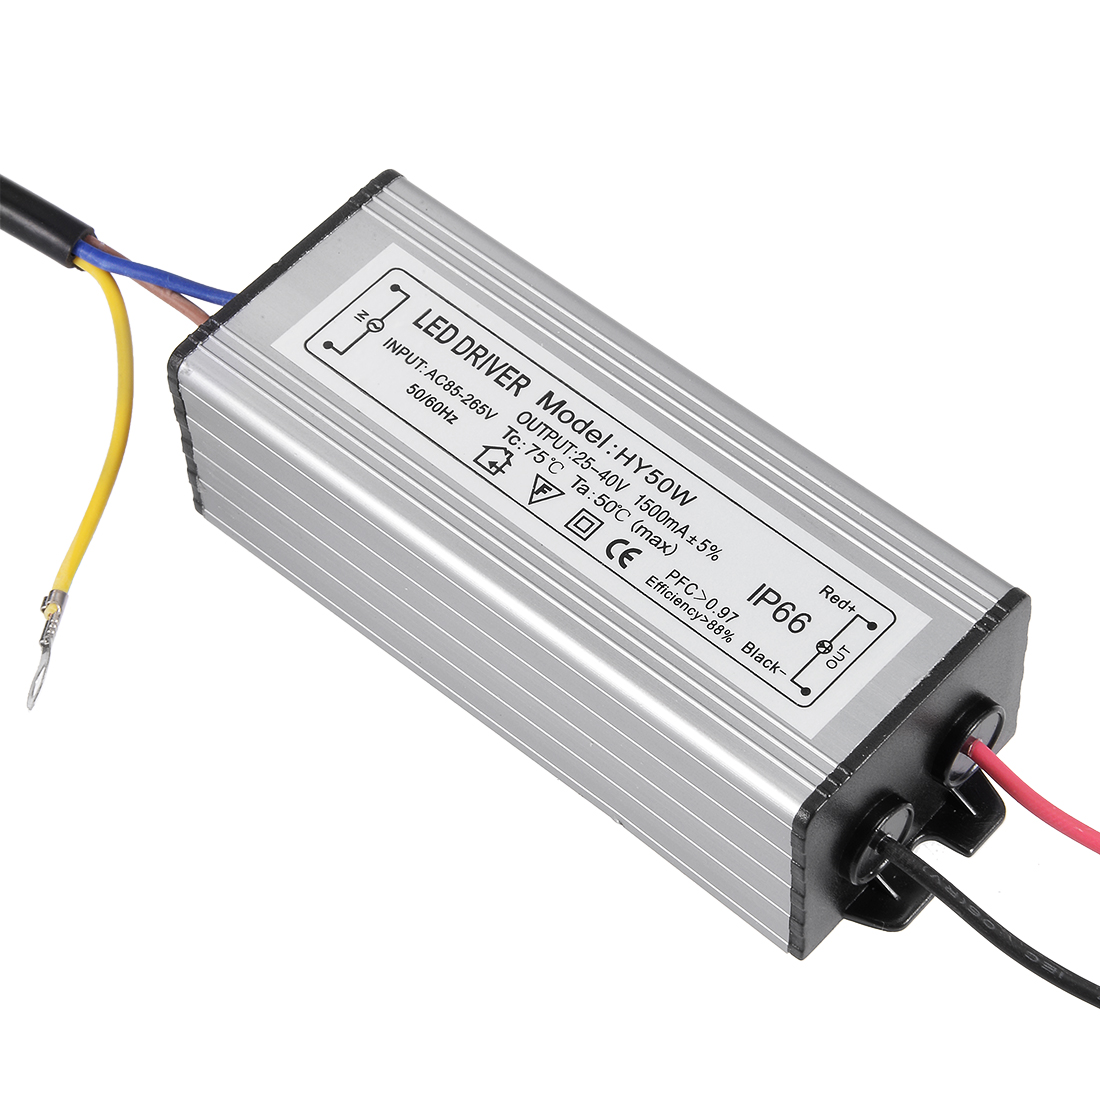 AC 85-265V to DC 25-40V 50W IP66 Waterproof LED Driver Power Supply Converter Transformer Adapter